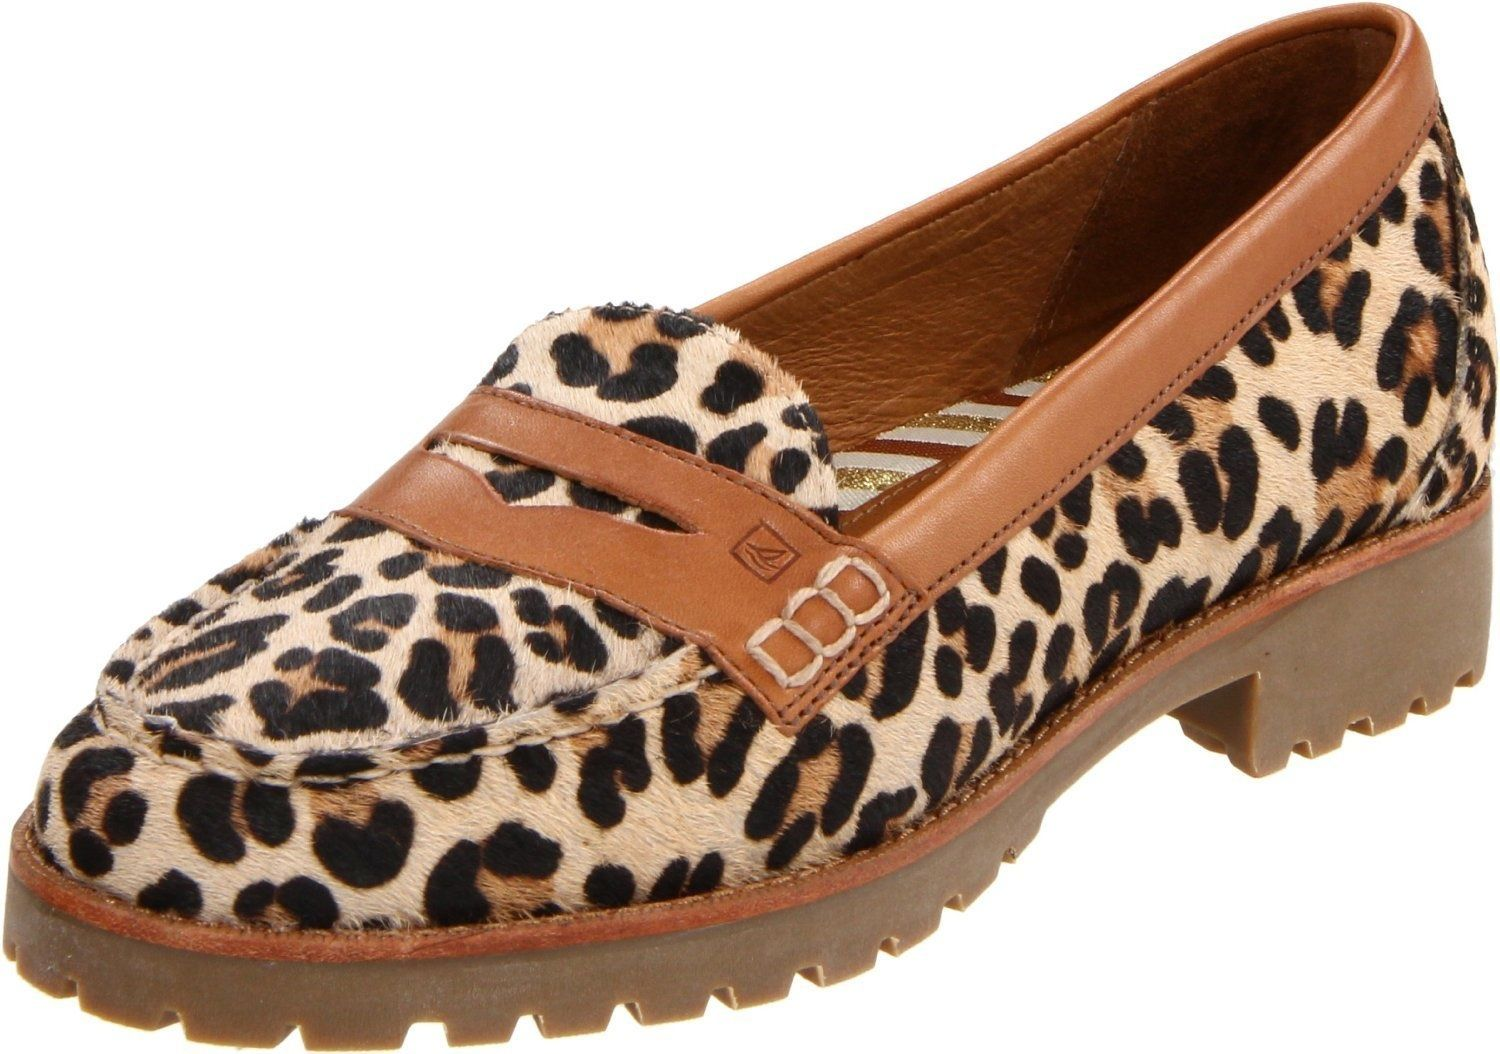 743569e27014 Sperry Top-Sider Winsor Loafers Womens Leopard Cognac. eBay. dominantdeals.